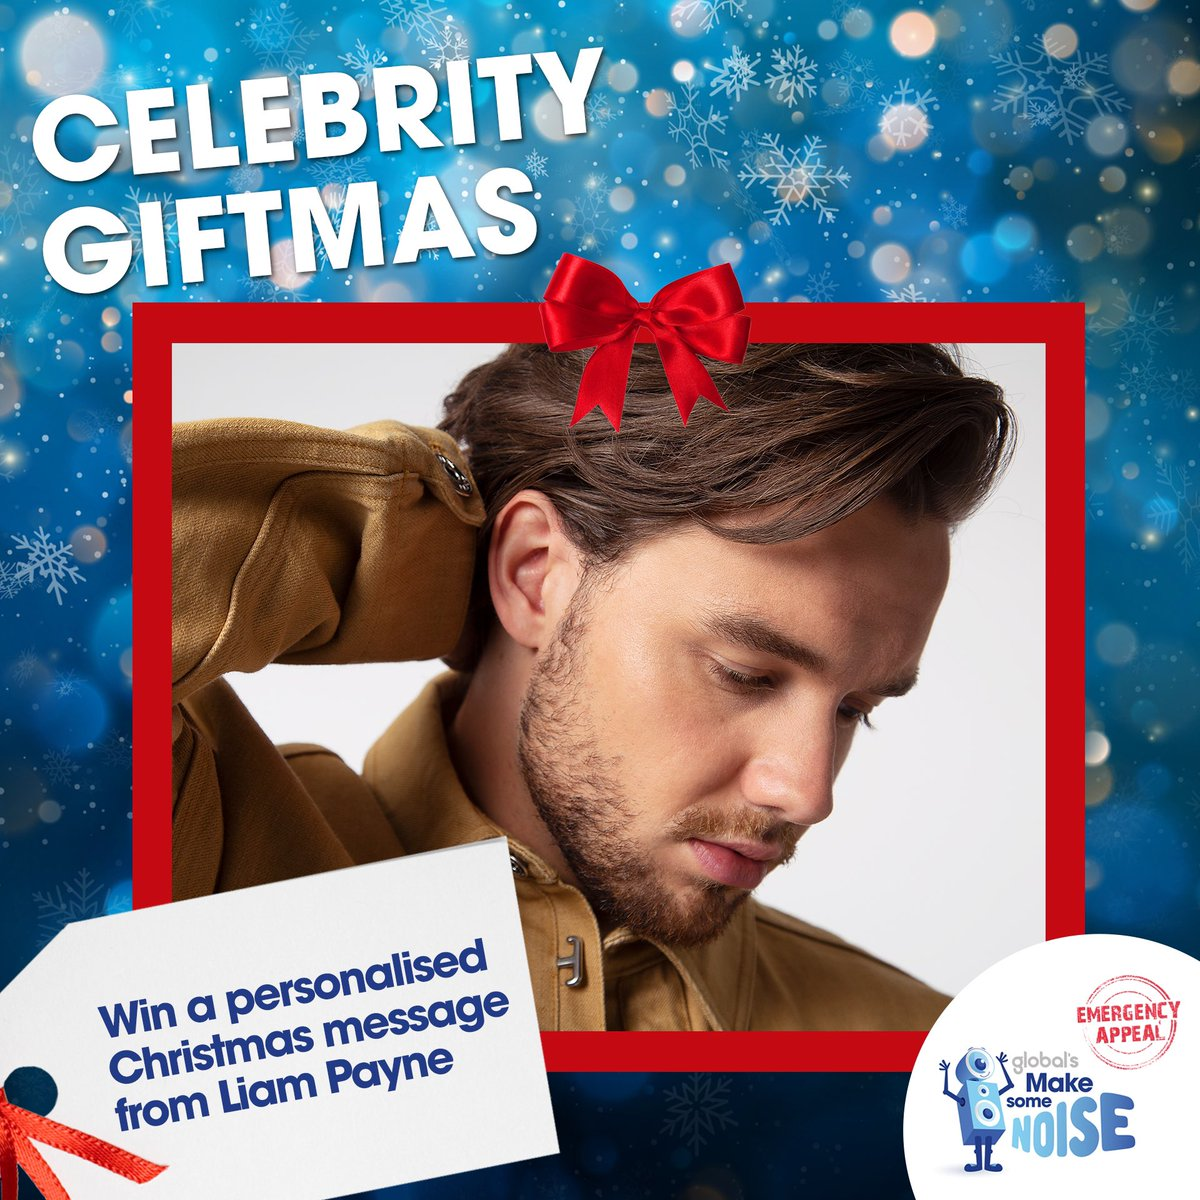 I'm excited to be part of Global's @makenoise #CelebrityGiftmas, helping those hit hardest by coronavirus across the UK.  For your chance to win a video message from me to you, or for a special someone in your life this Christmas, enter here: